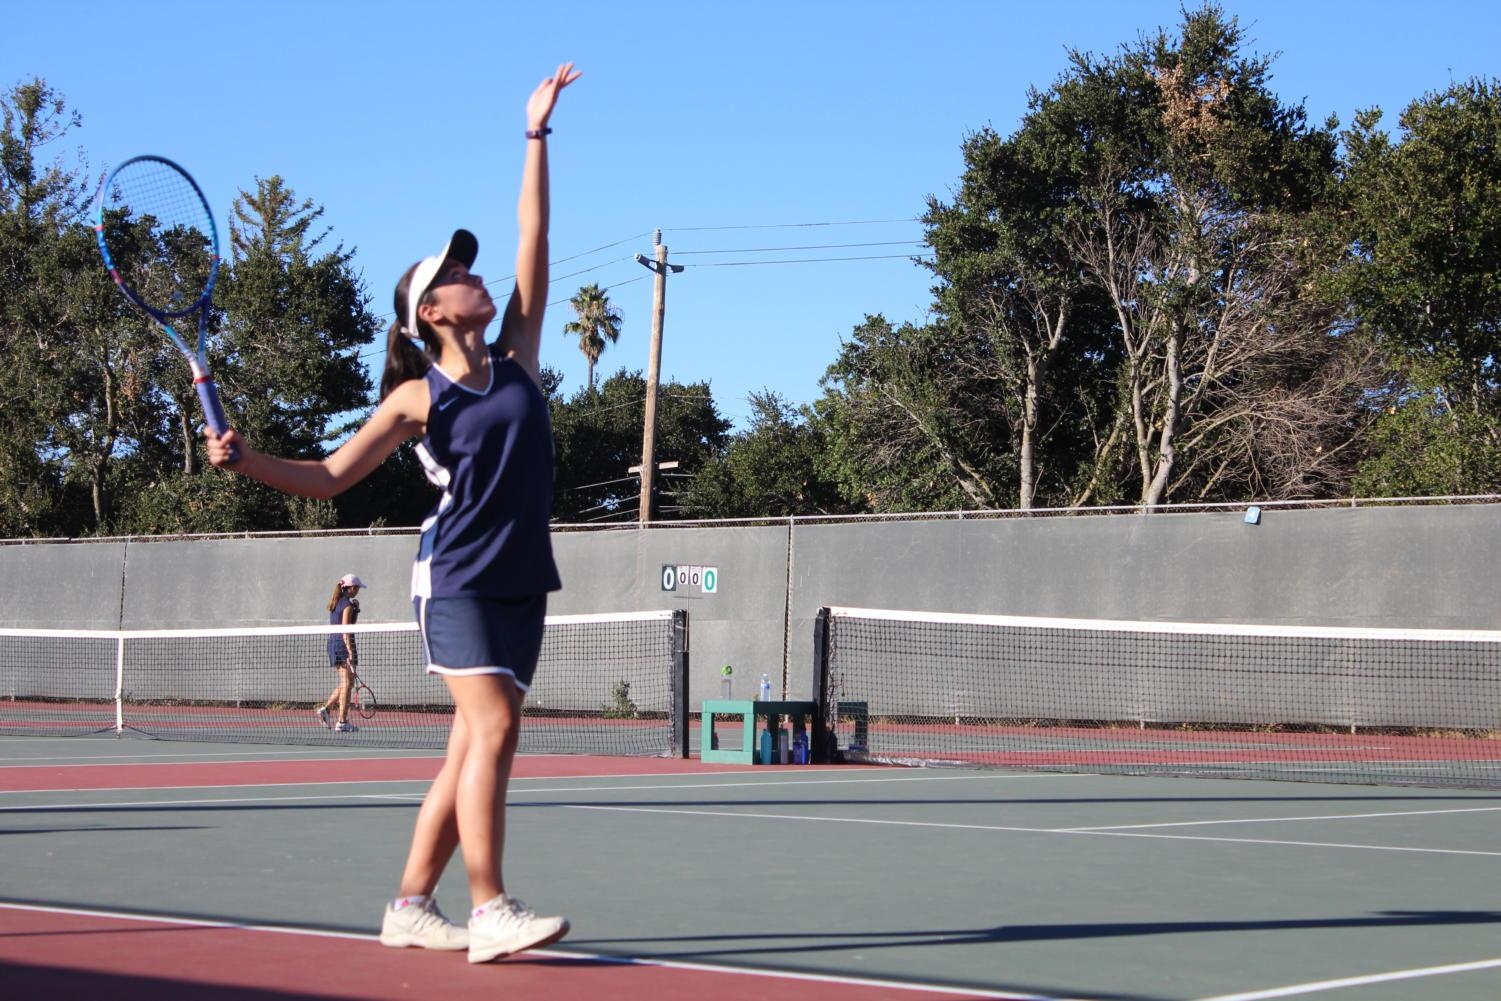 Sophomore+Lily+Gittoes+prepares+to+serve+in+the+first+set+of+her+doubles+match+against+Hillsdale.